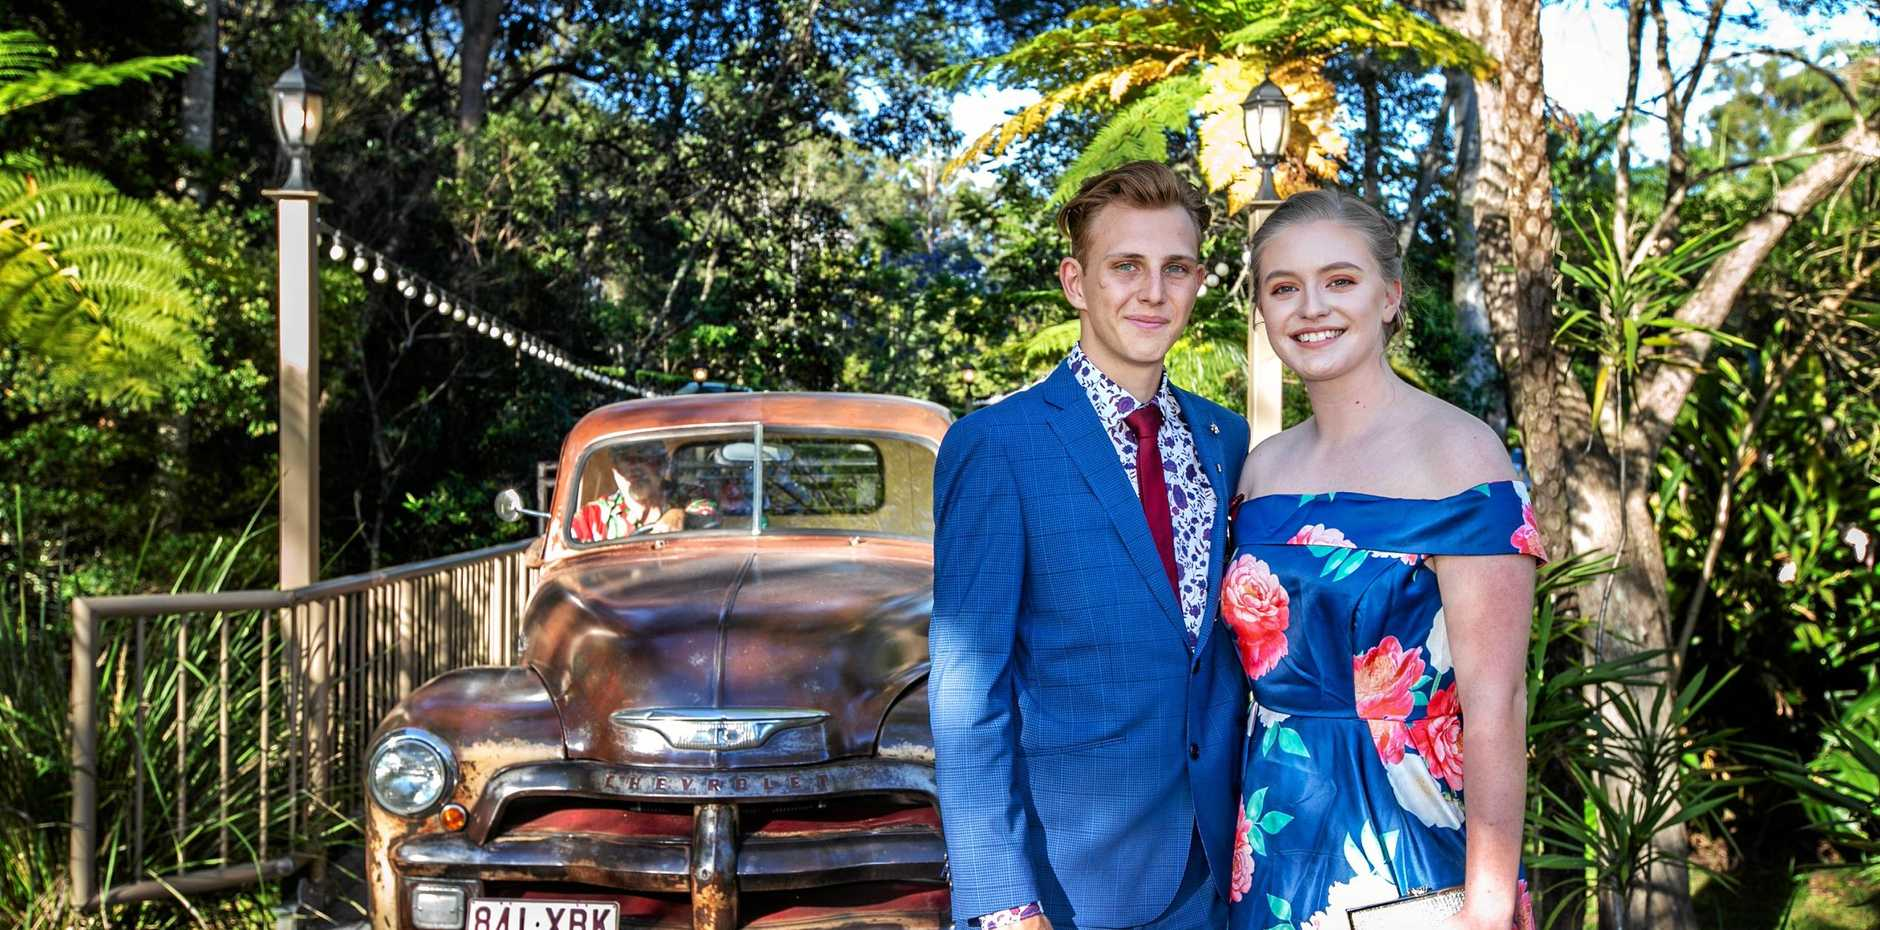 FANCY: Caspian Blackwell-Barnes and Lily Marks arrive in style to the Tweed Valley Adventist College formal.